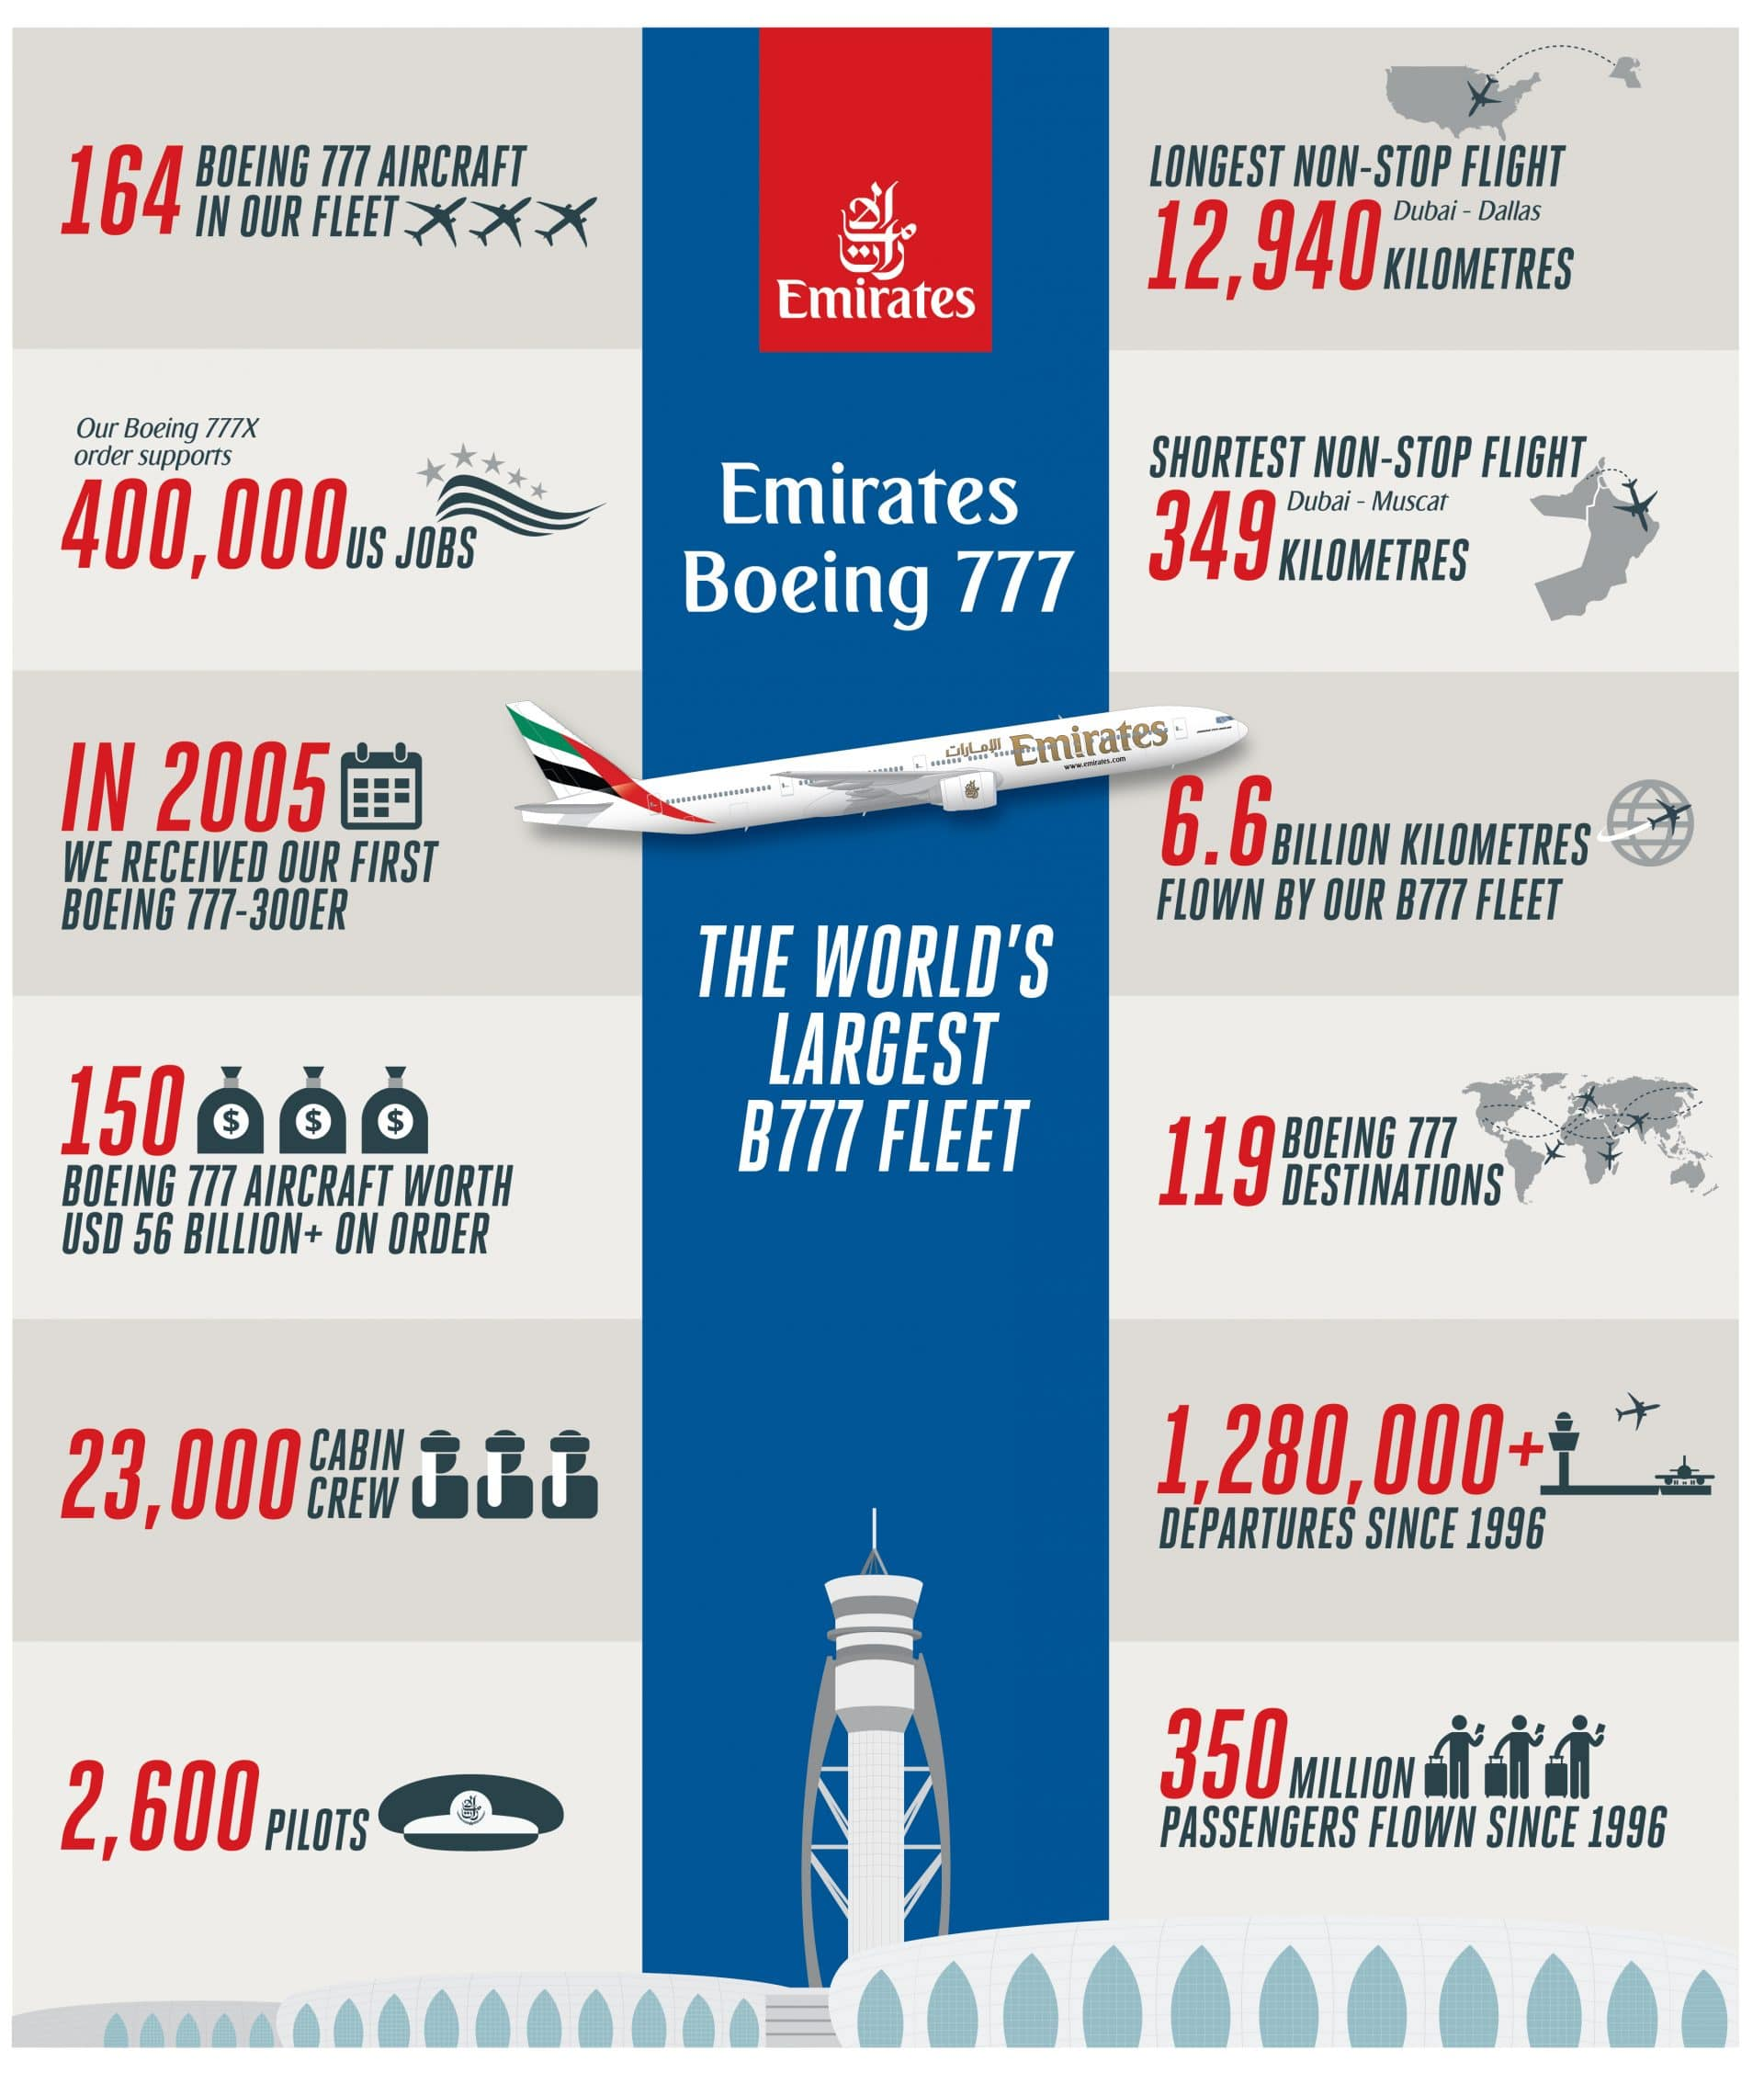 Emirates takes delivery of its last Boeing 777-300ER